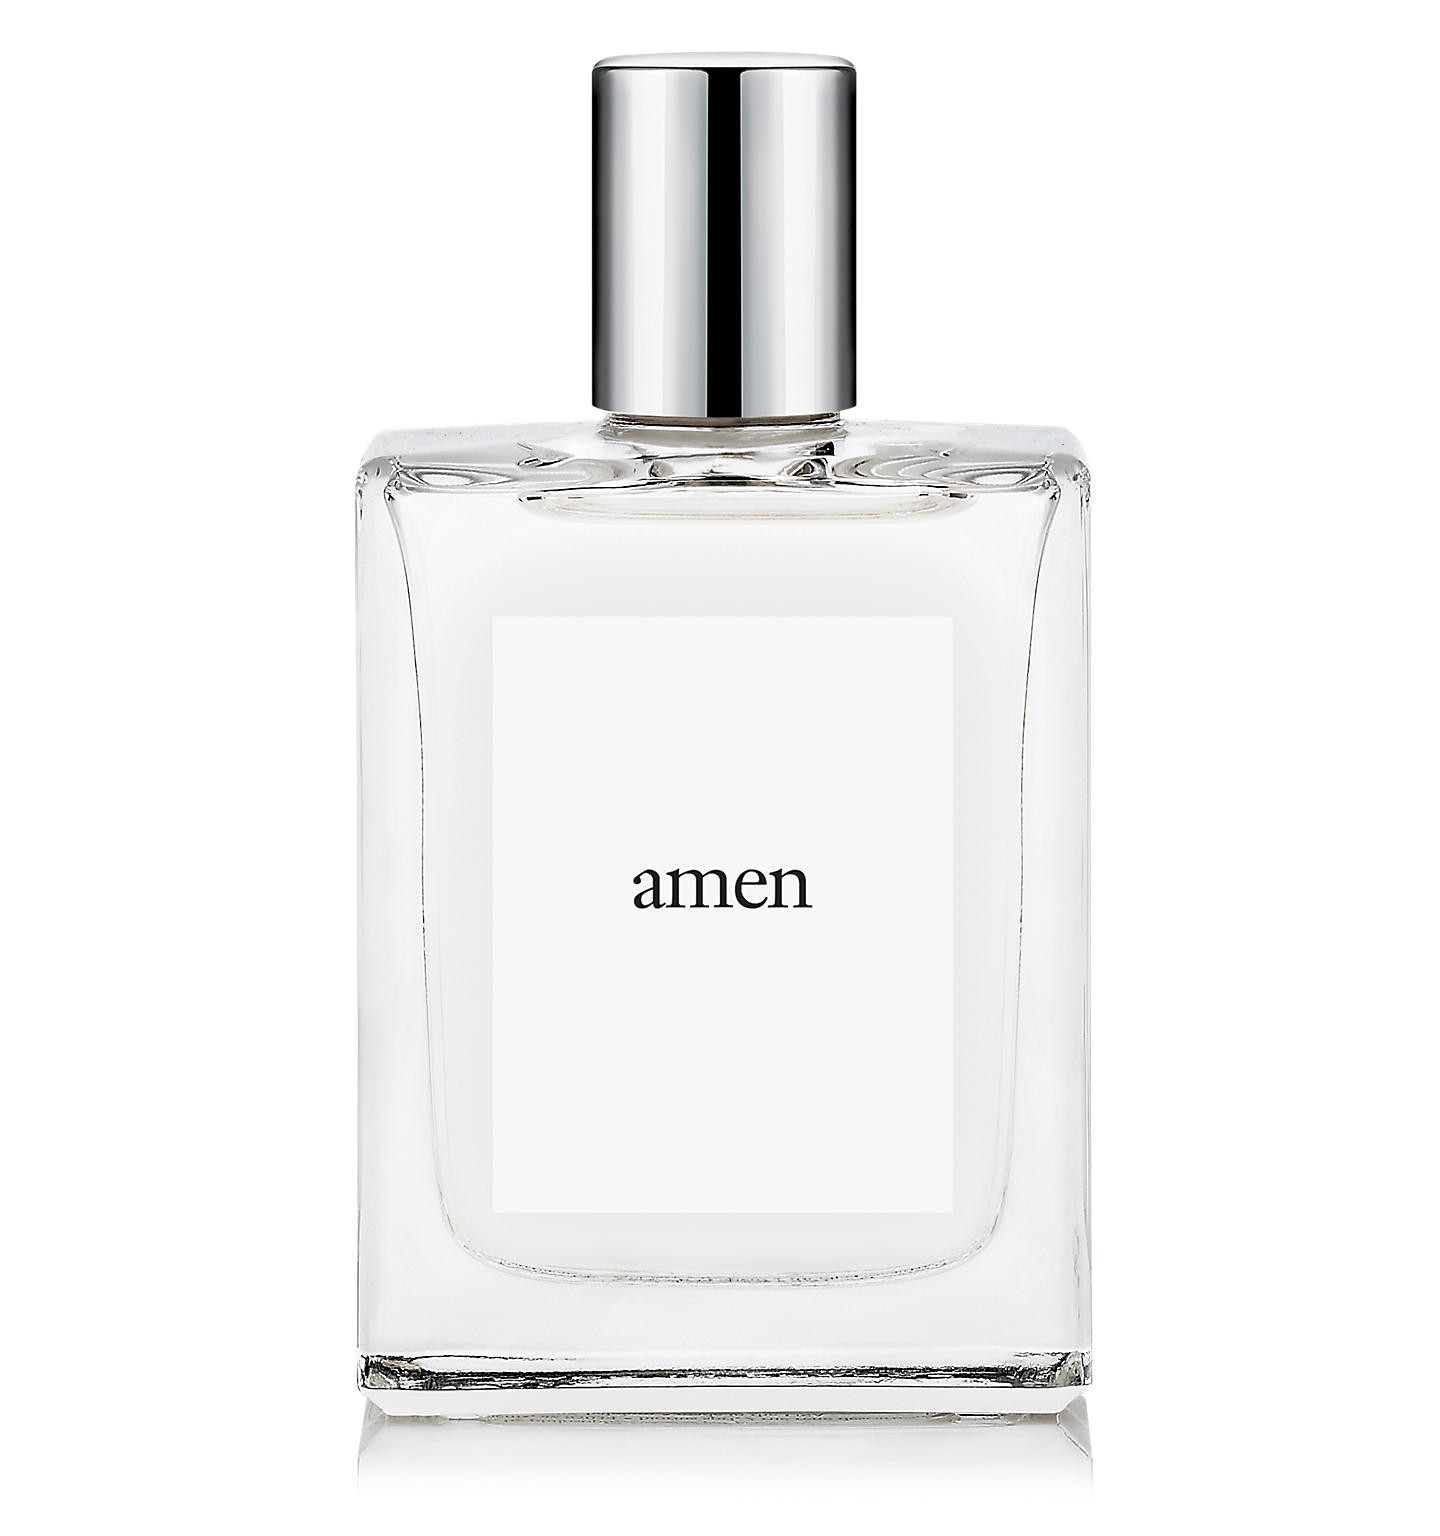 philosophy, amen cologne, 2oz